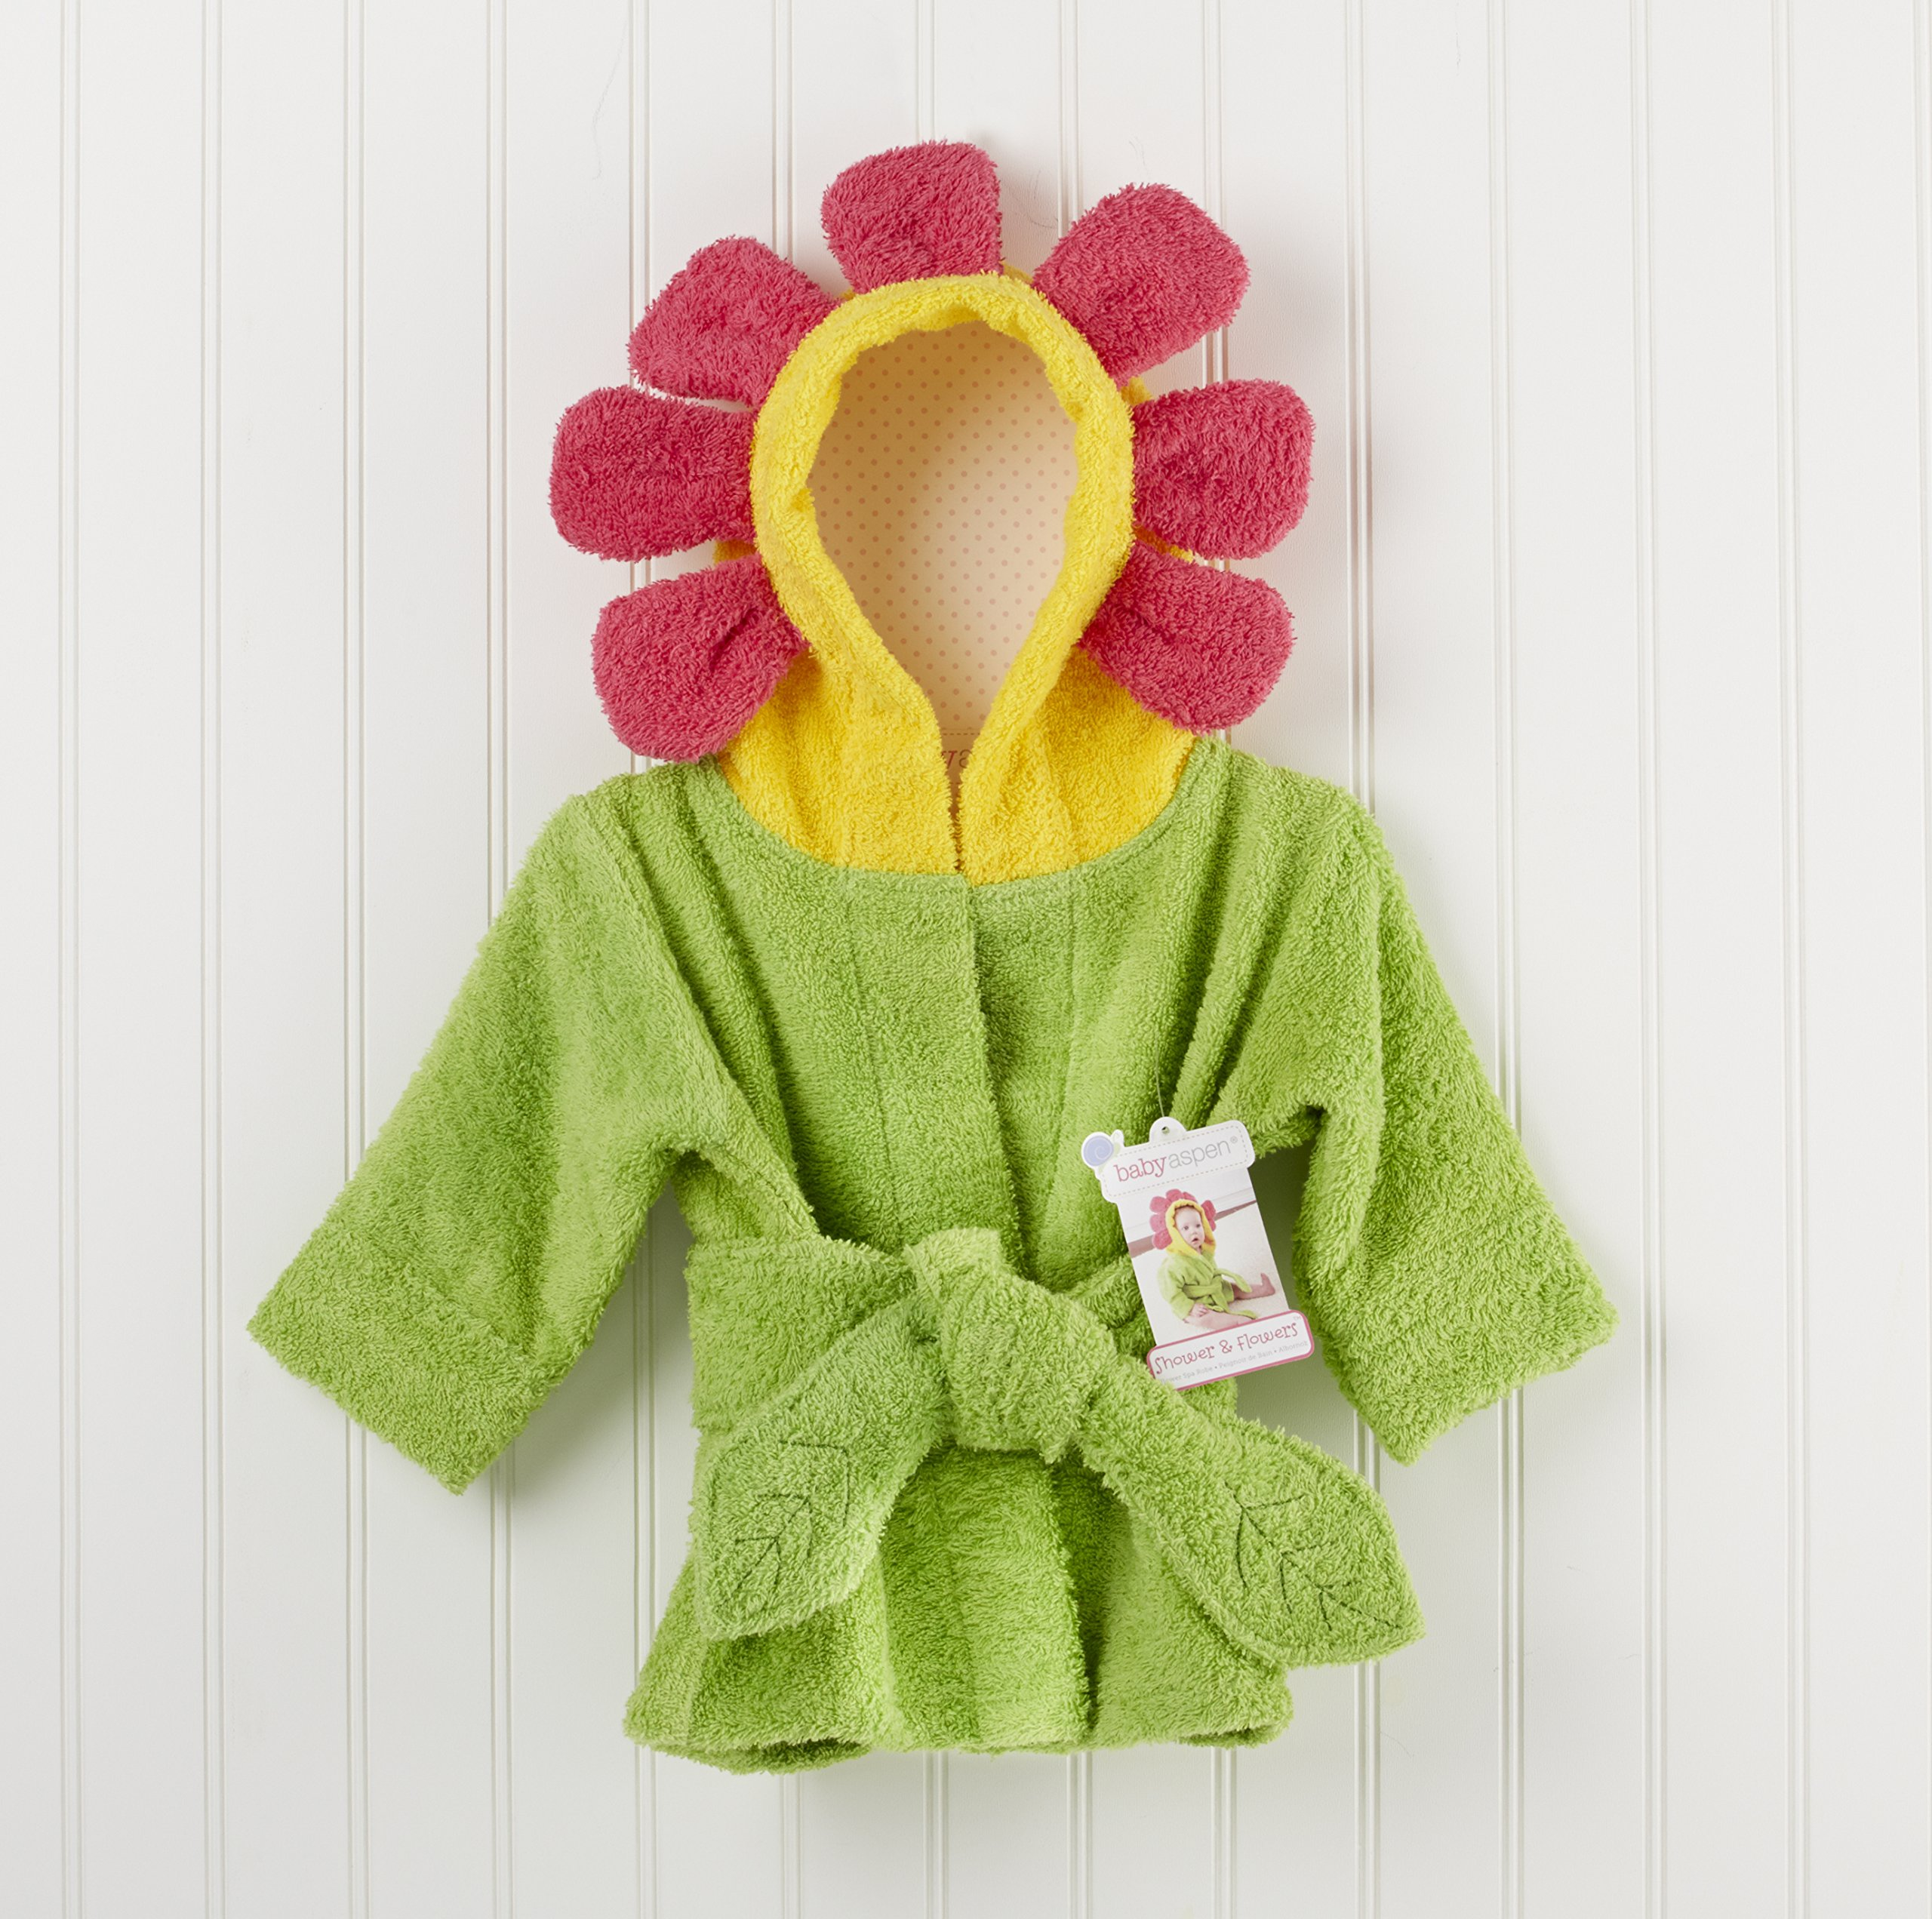 Baby Aspen Hooded Spa Robe, Showers and Flowers by Baby Aspen (Image #2)